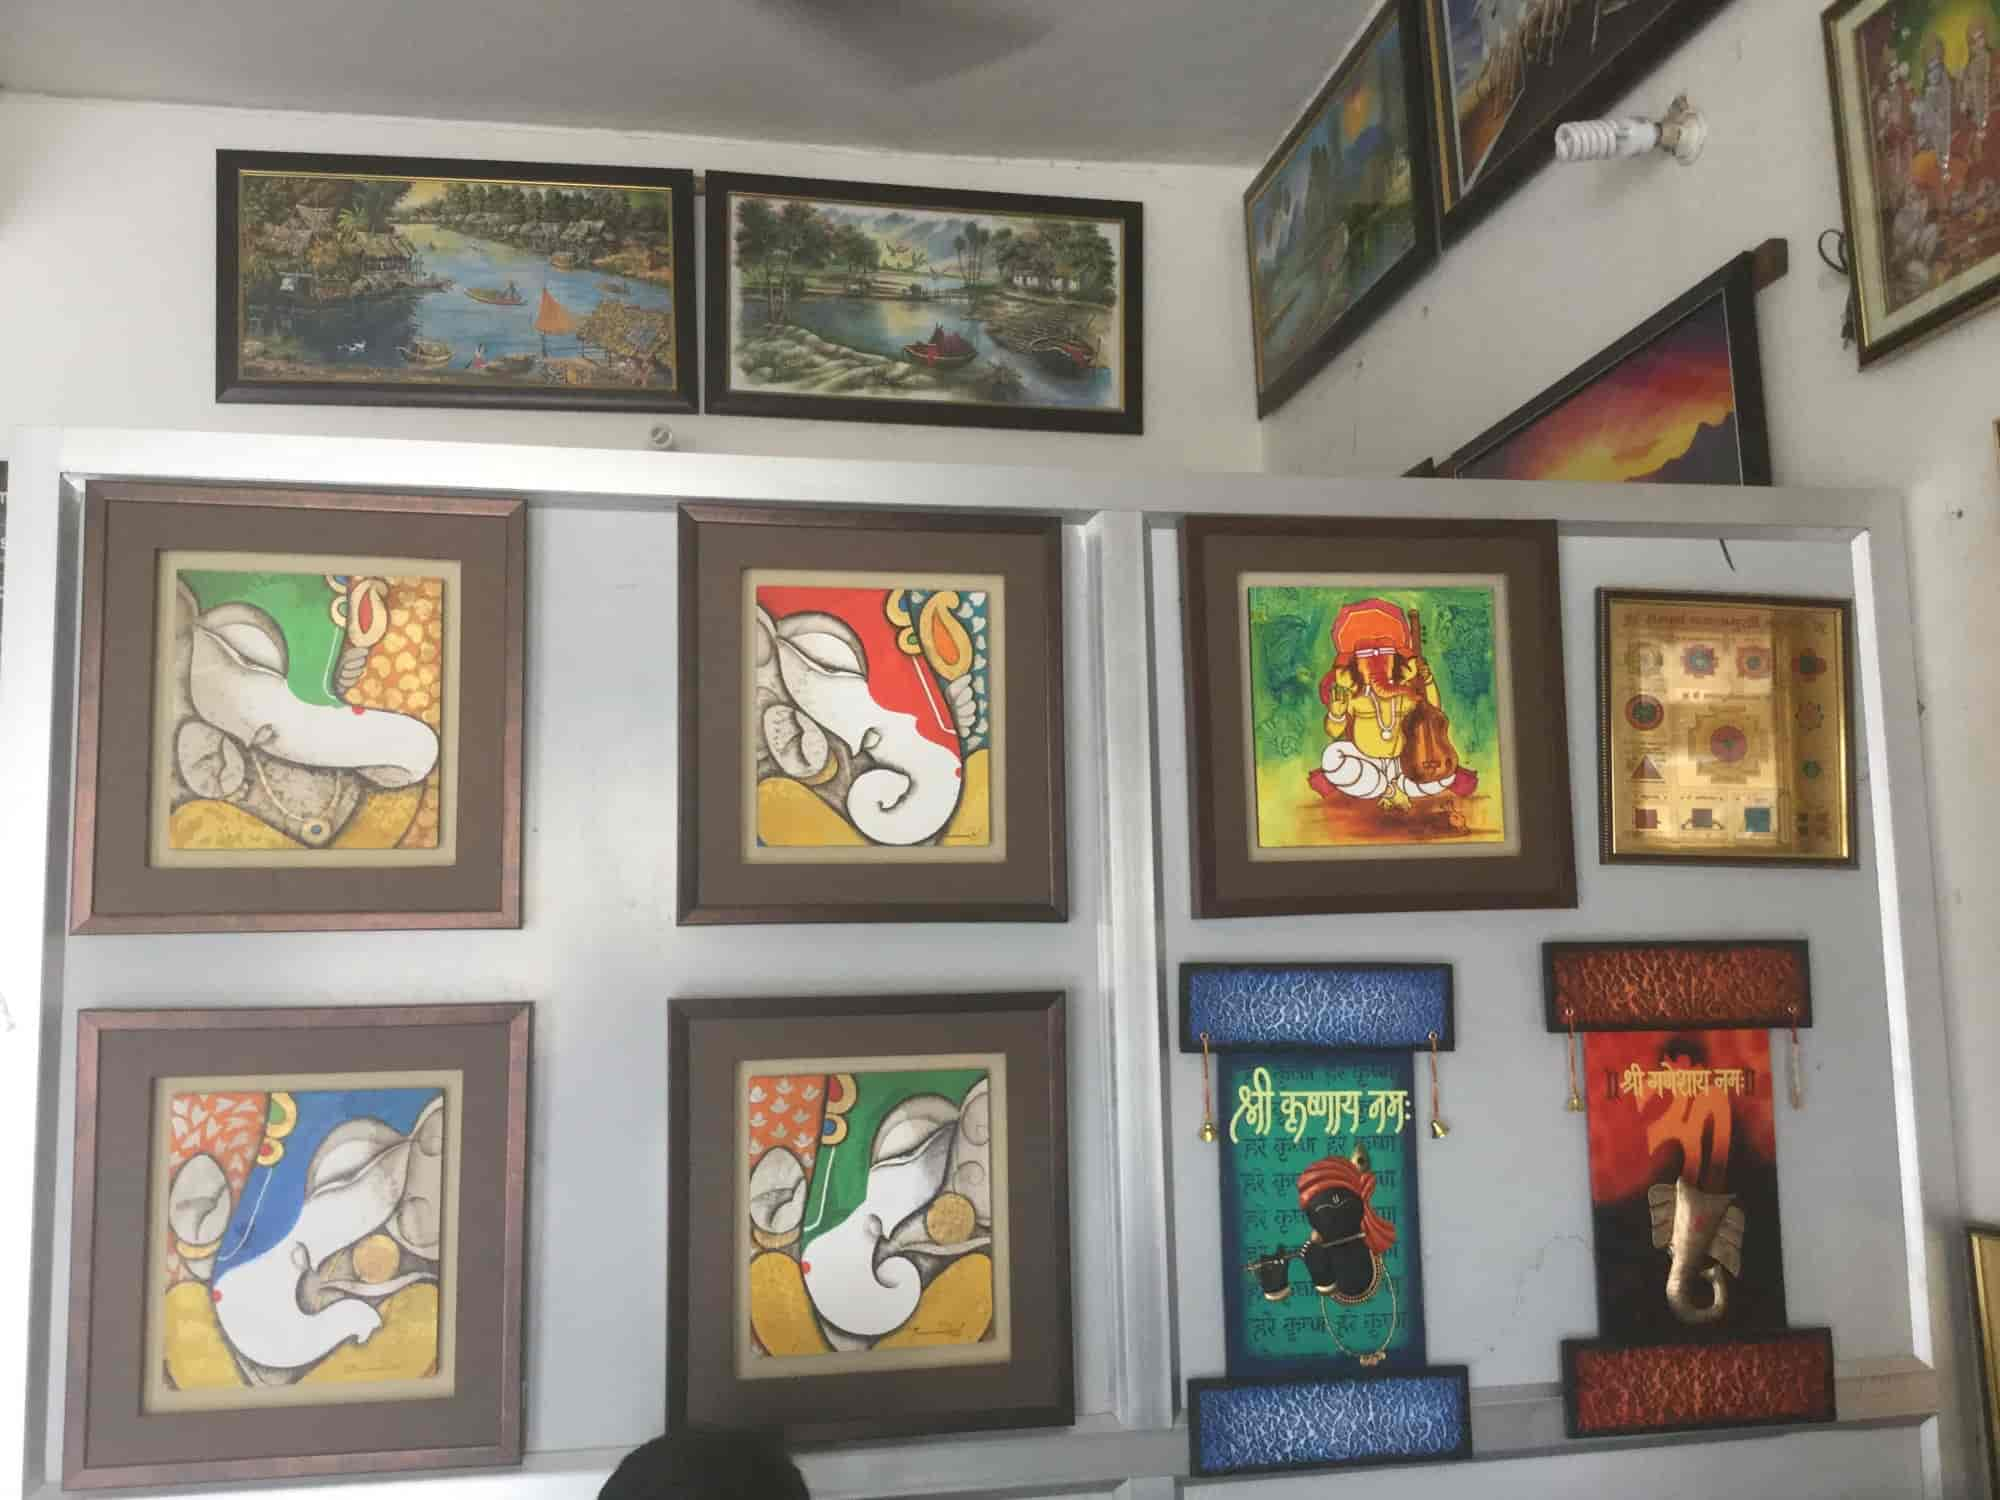 Rk FRAME WORKS Photos, , Haldwani- Pictures & Images Gallery - Justdial